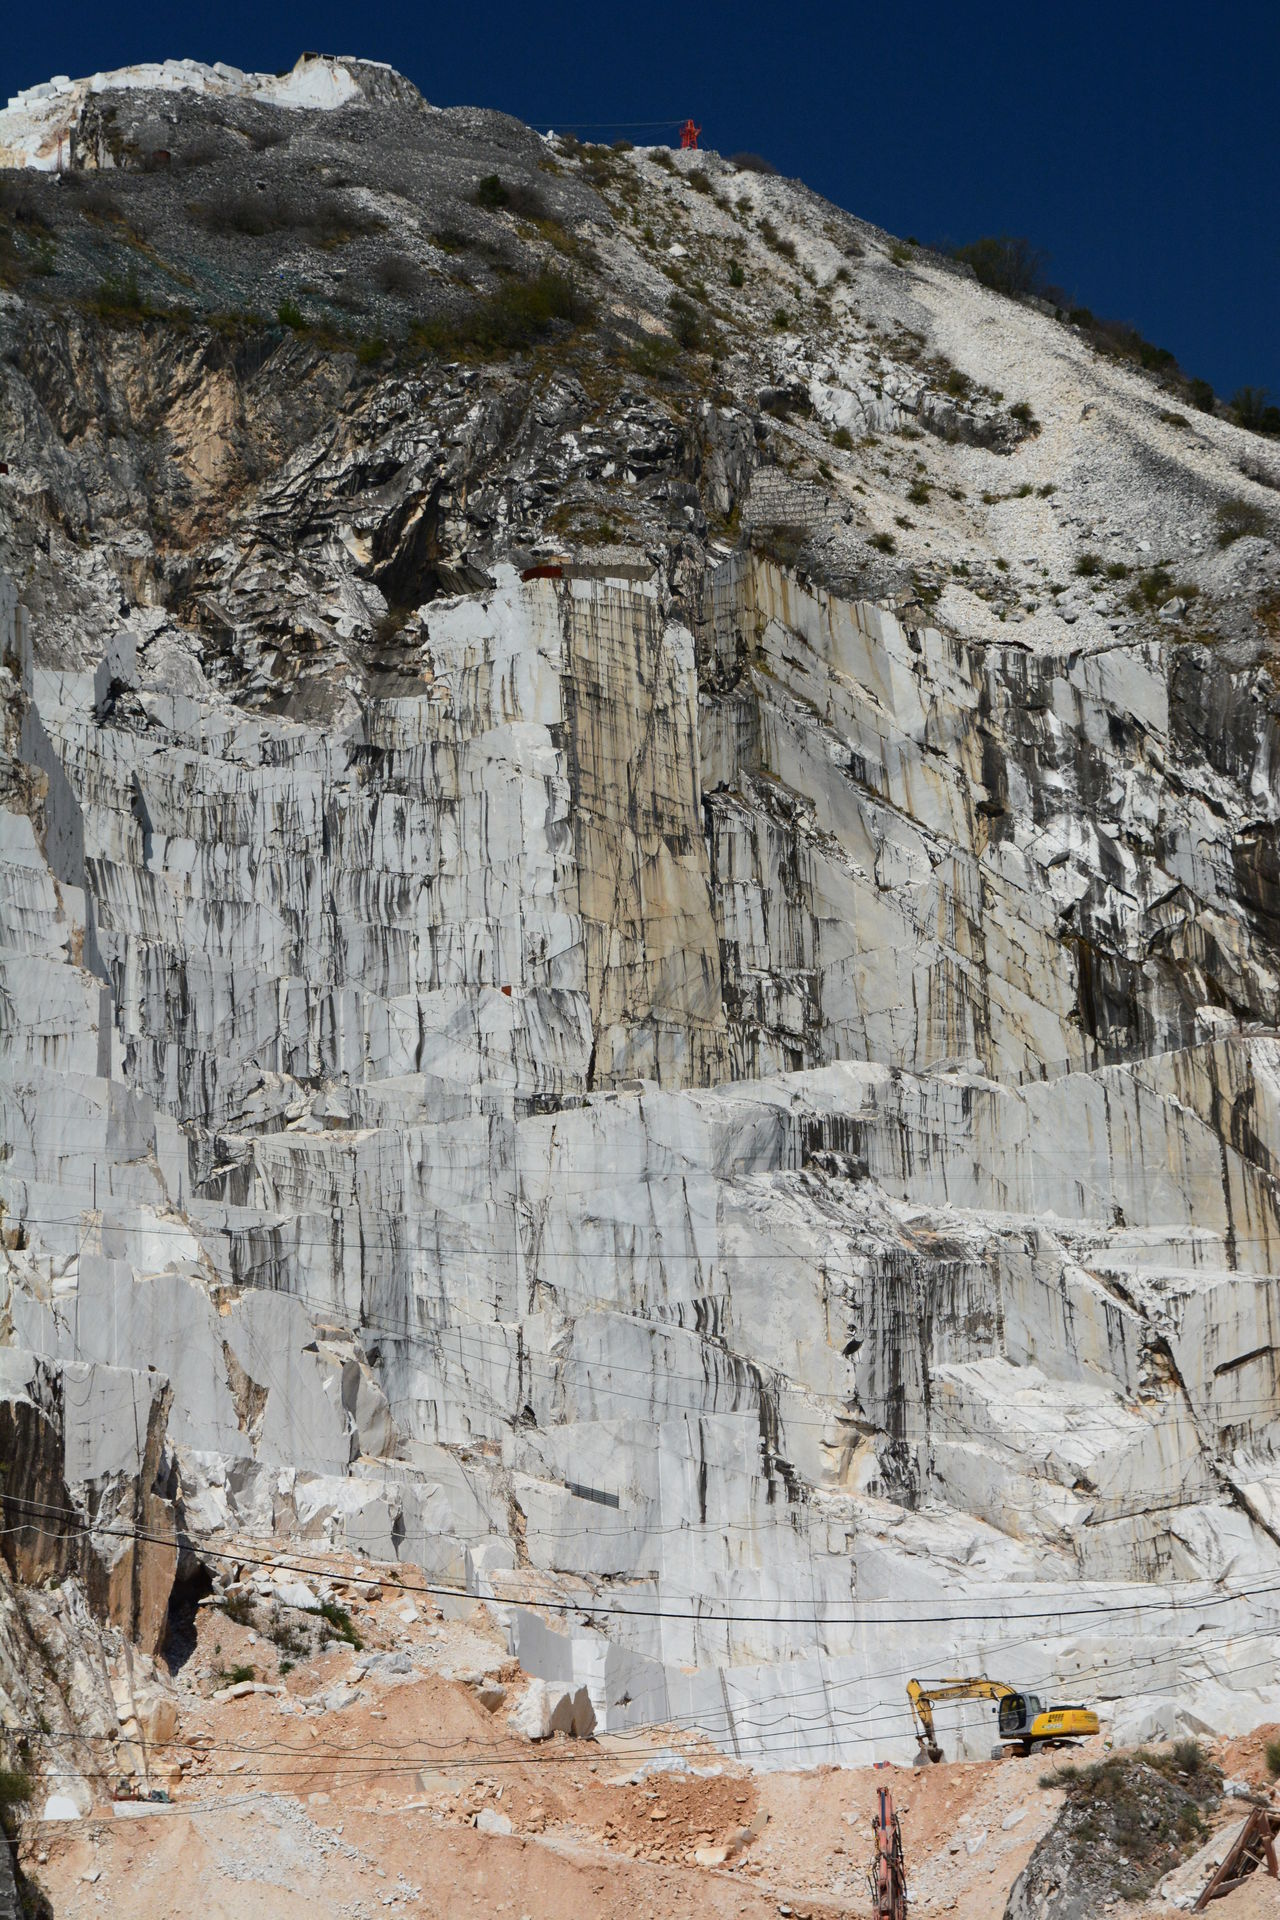 Marble quarry. Carrara province. Apuan alps. Italy Apuan Alps Apuane Mountains Carrara Carrara Marble Cliff Extraction Italy Marble Marble Quarry Mountain Nature Outdoors Quarries Quarry Toscana Tuscany Tuscanygram White White Marble Working Place